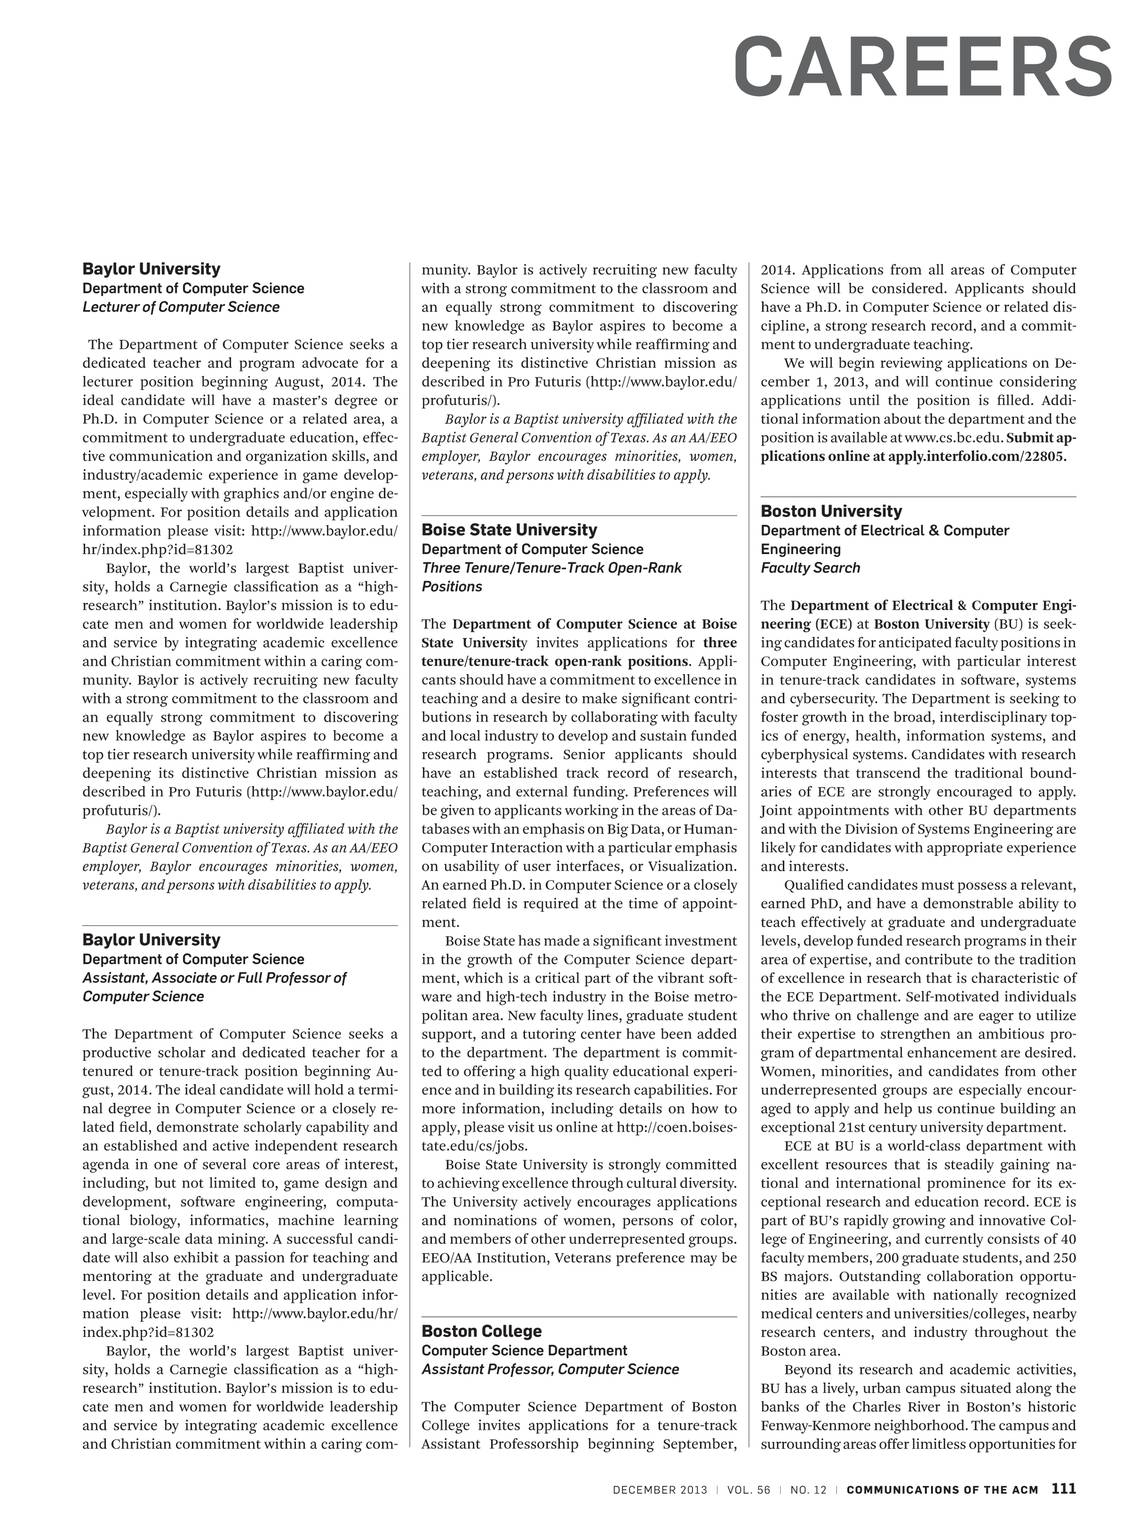 Communications of the ACM - December 2013 - page 111